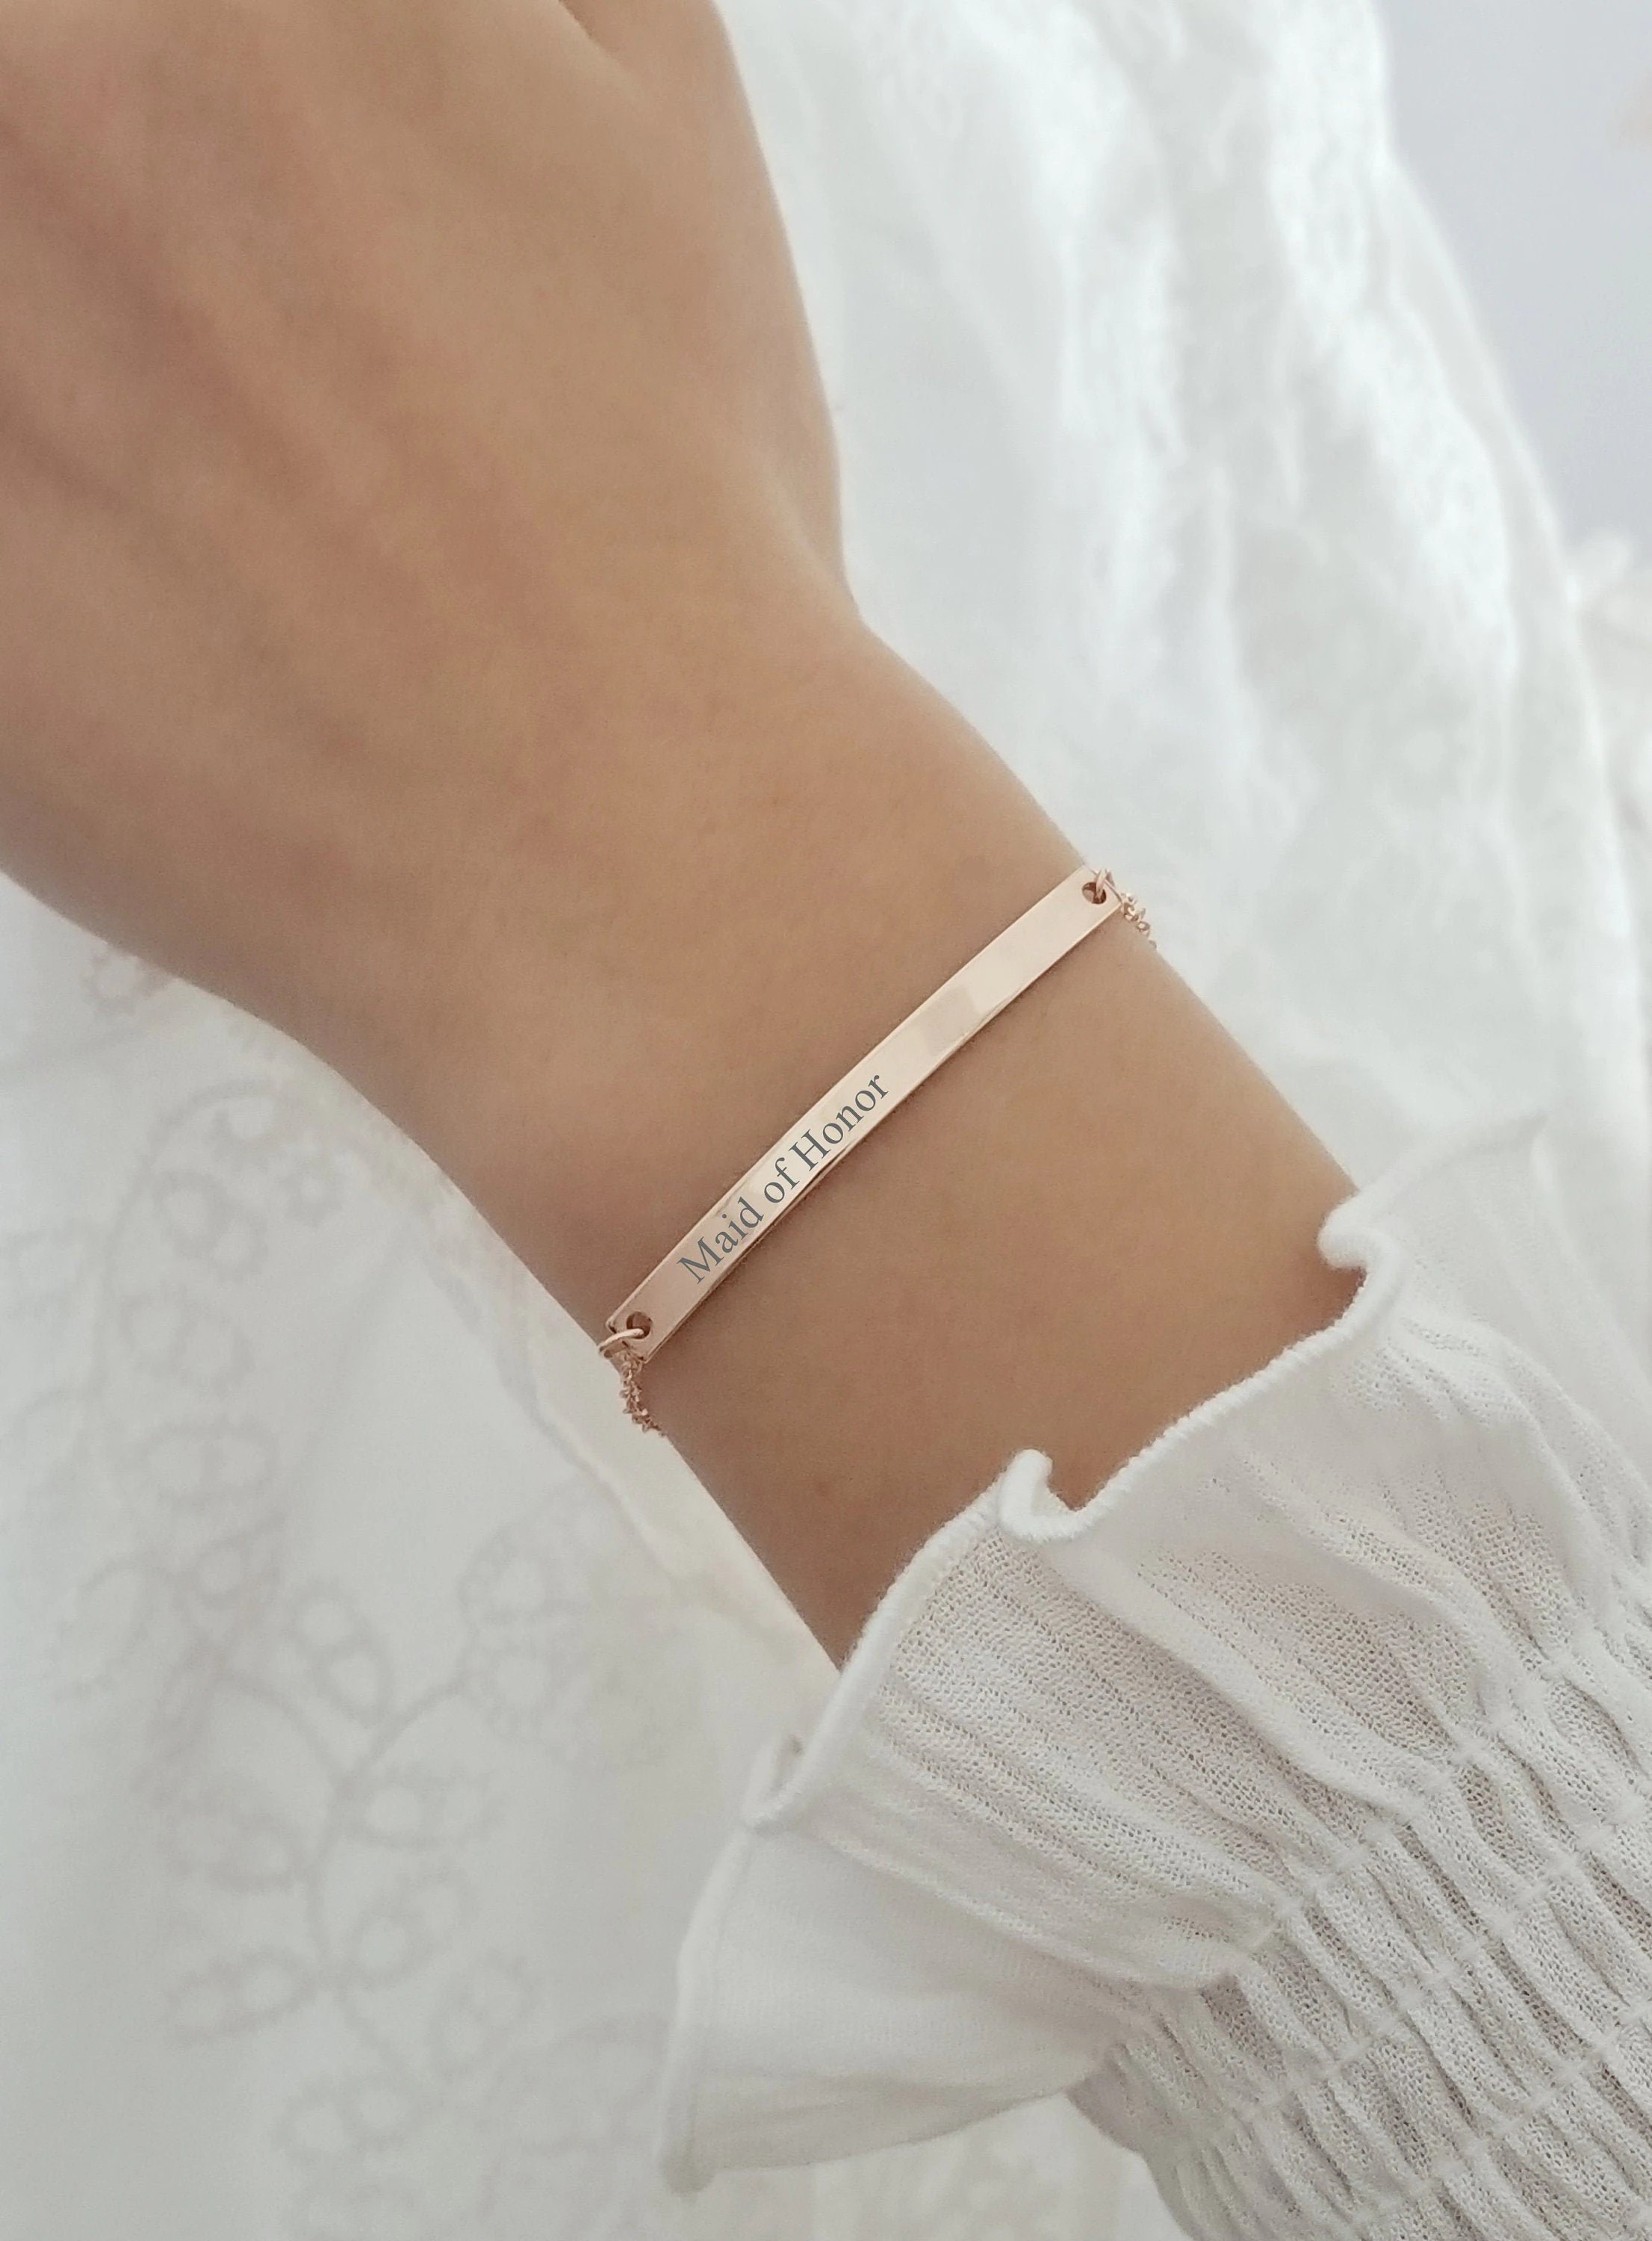 Maid of Honor Sister Bracelet Maid of Honor Gift Maid of image 1